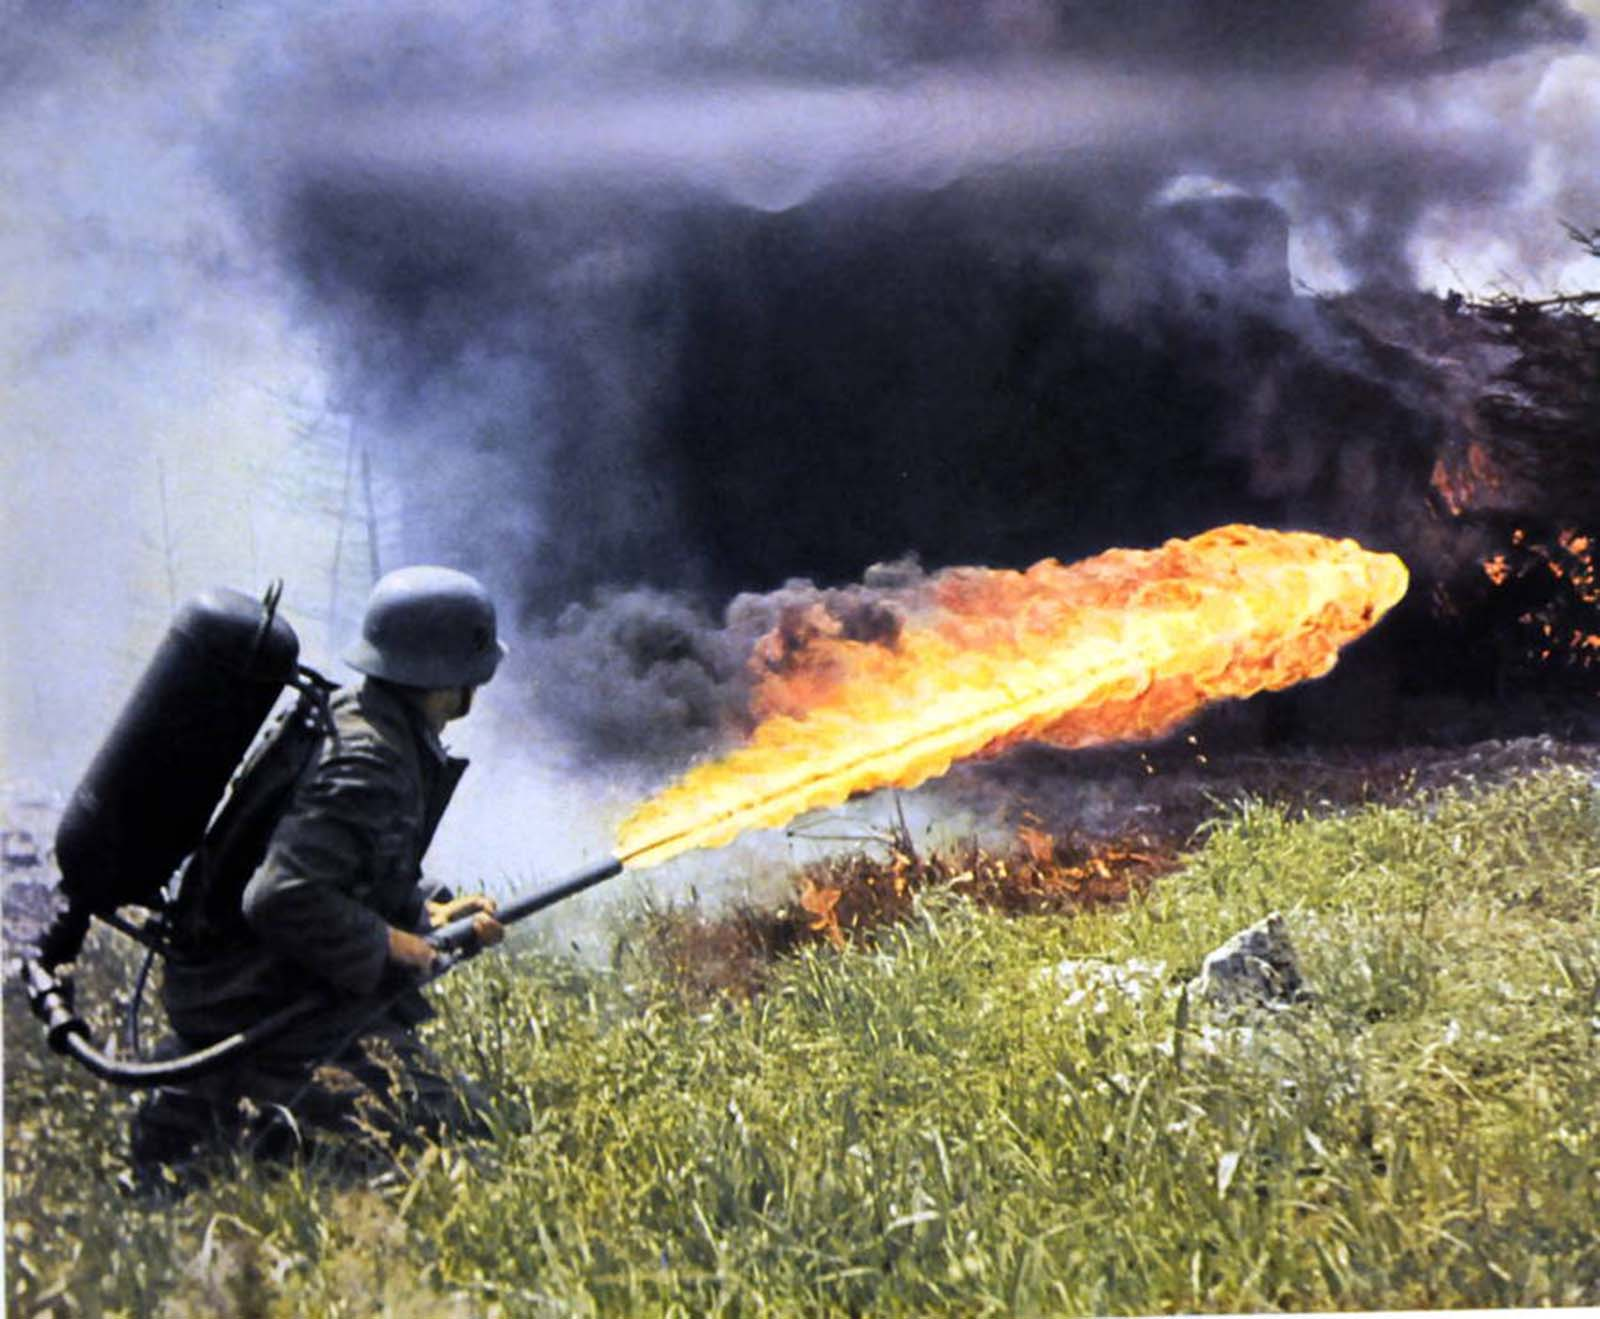 A German solider fires a backpack flamethrower across a field of tall grass in the Soviet Union.